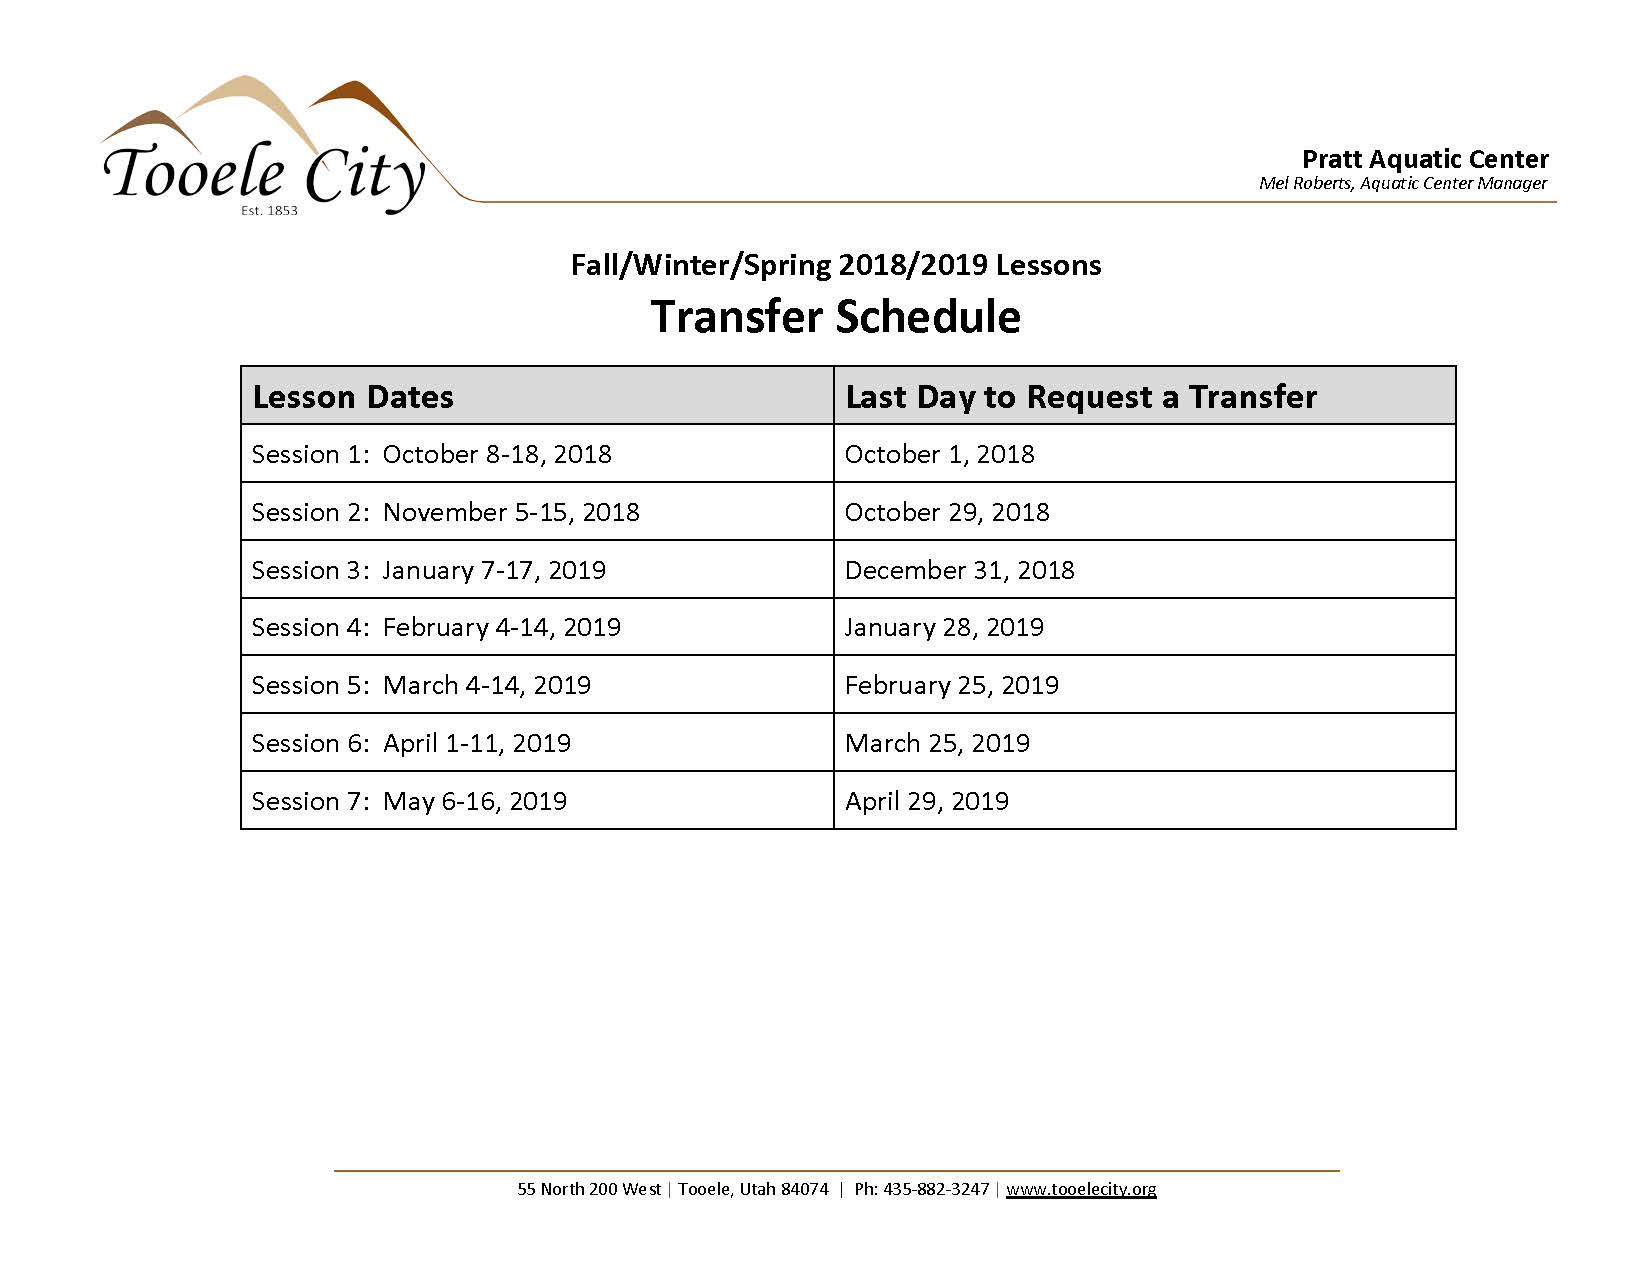 Lesson Transfer Schedule Fall/Winter/Spring 2018-2019